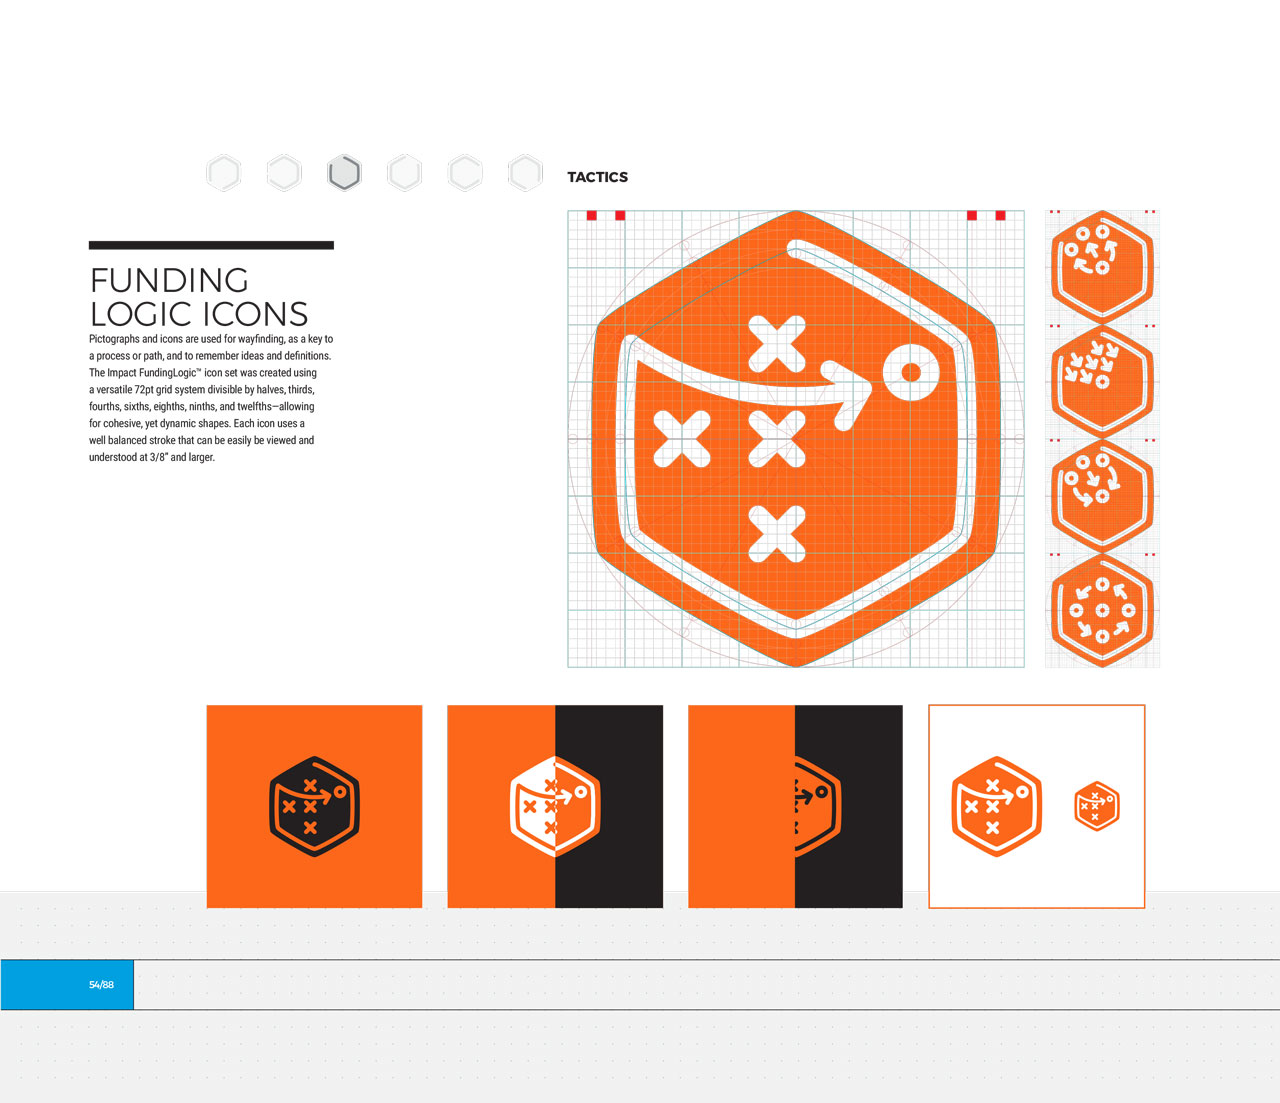 Single page from brand identity manual displaying orange, hexagonal tactics icon